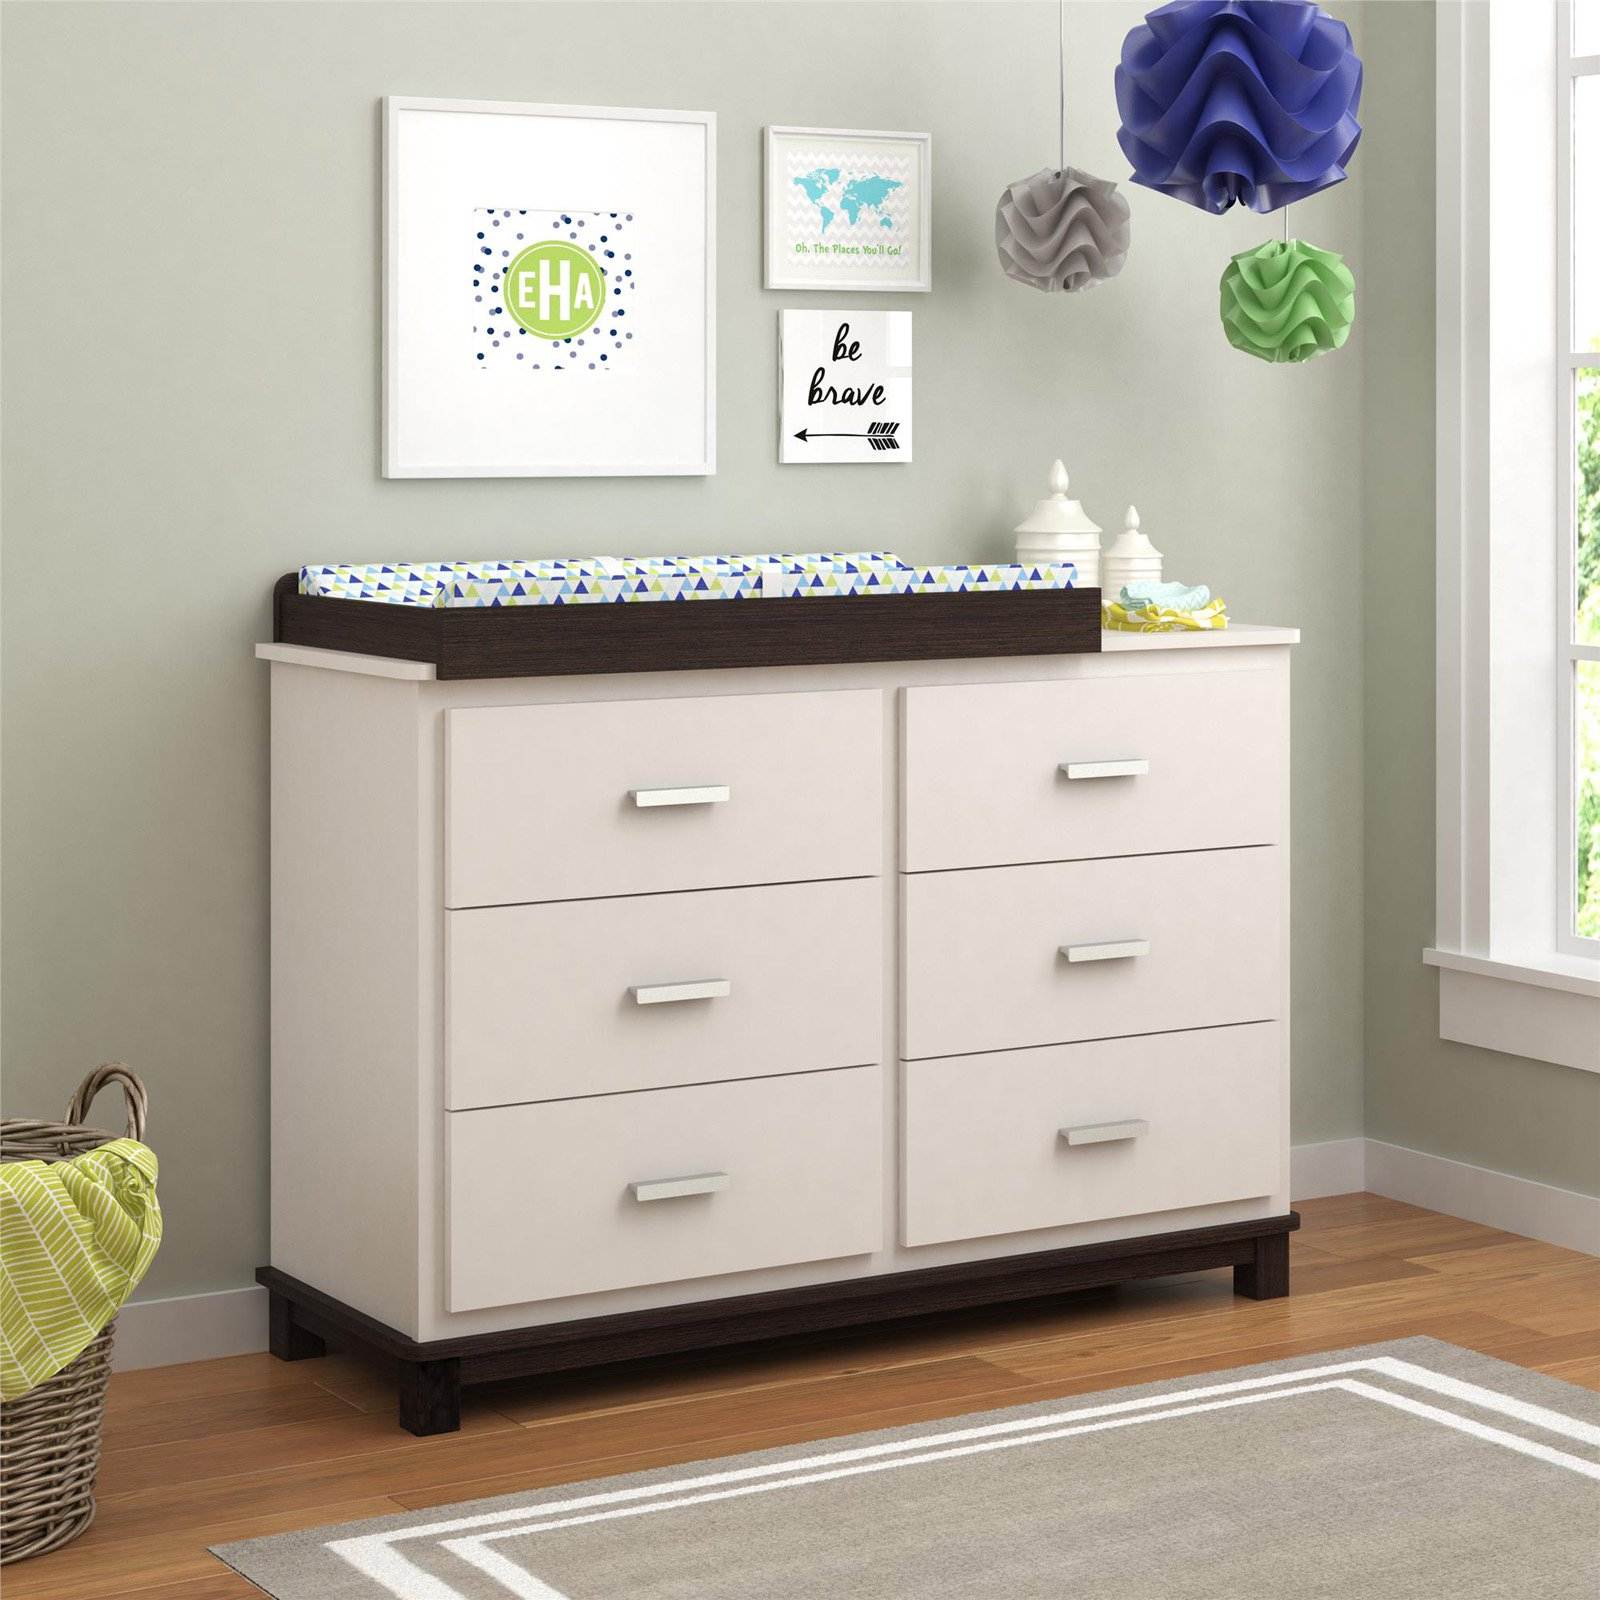 Cosco Leni 6 Drawer Dresser with Changing Table White Stipple by Ameriwood